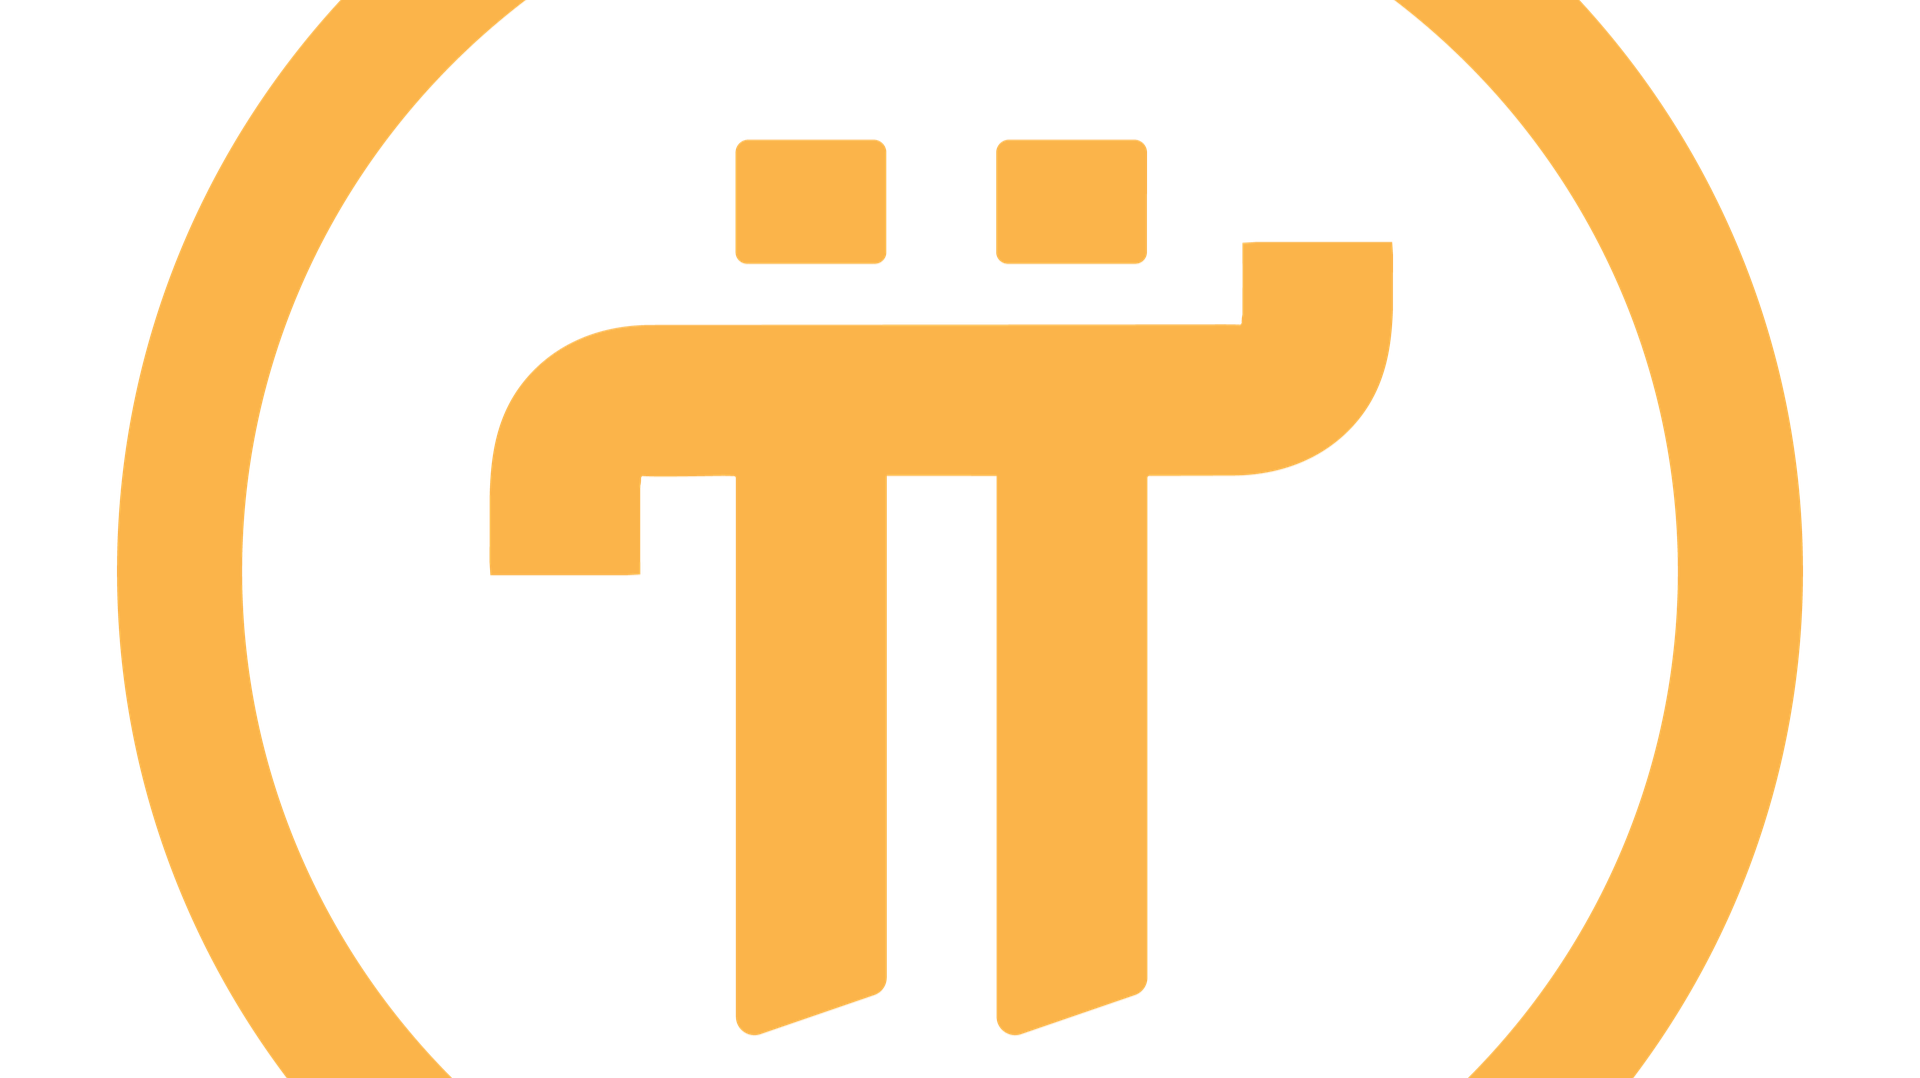 PI NETWORK - CRYPTO CURRENCY